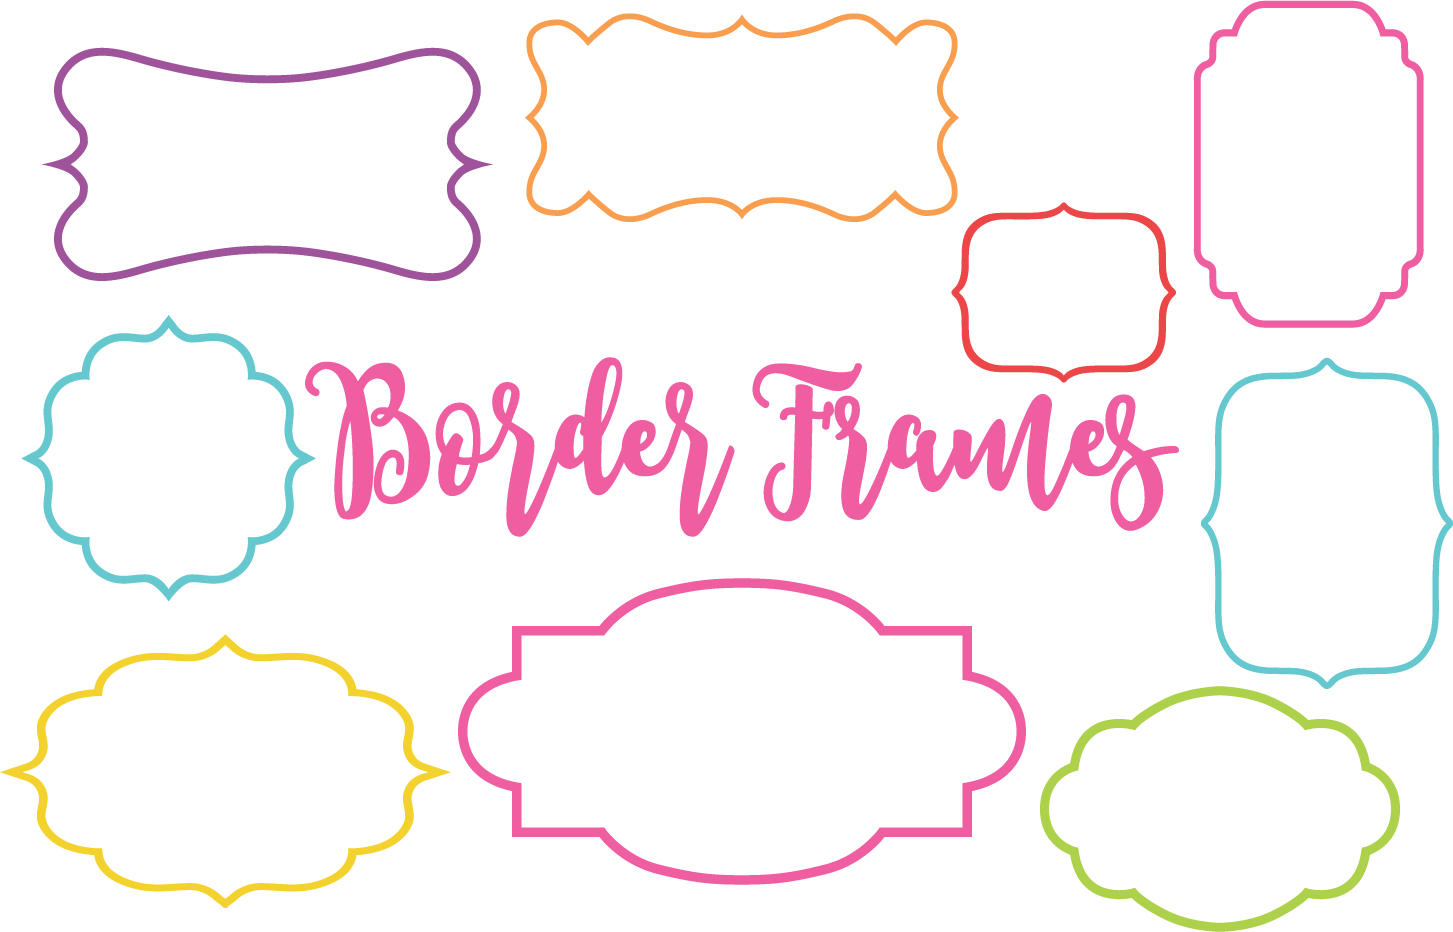 Download Free Colorful Border Frame Shapes Graphic By Sonyadehart Creative for Cricut Explore, Silhouette and other cutting machines.